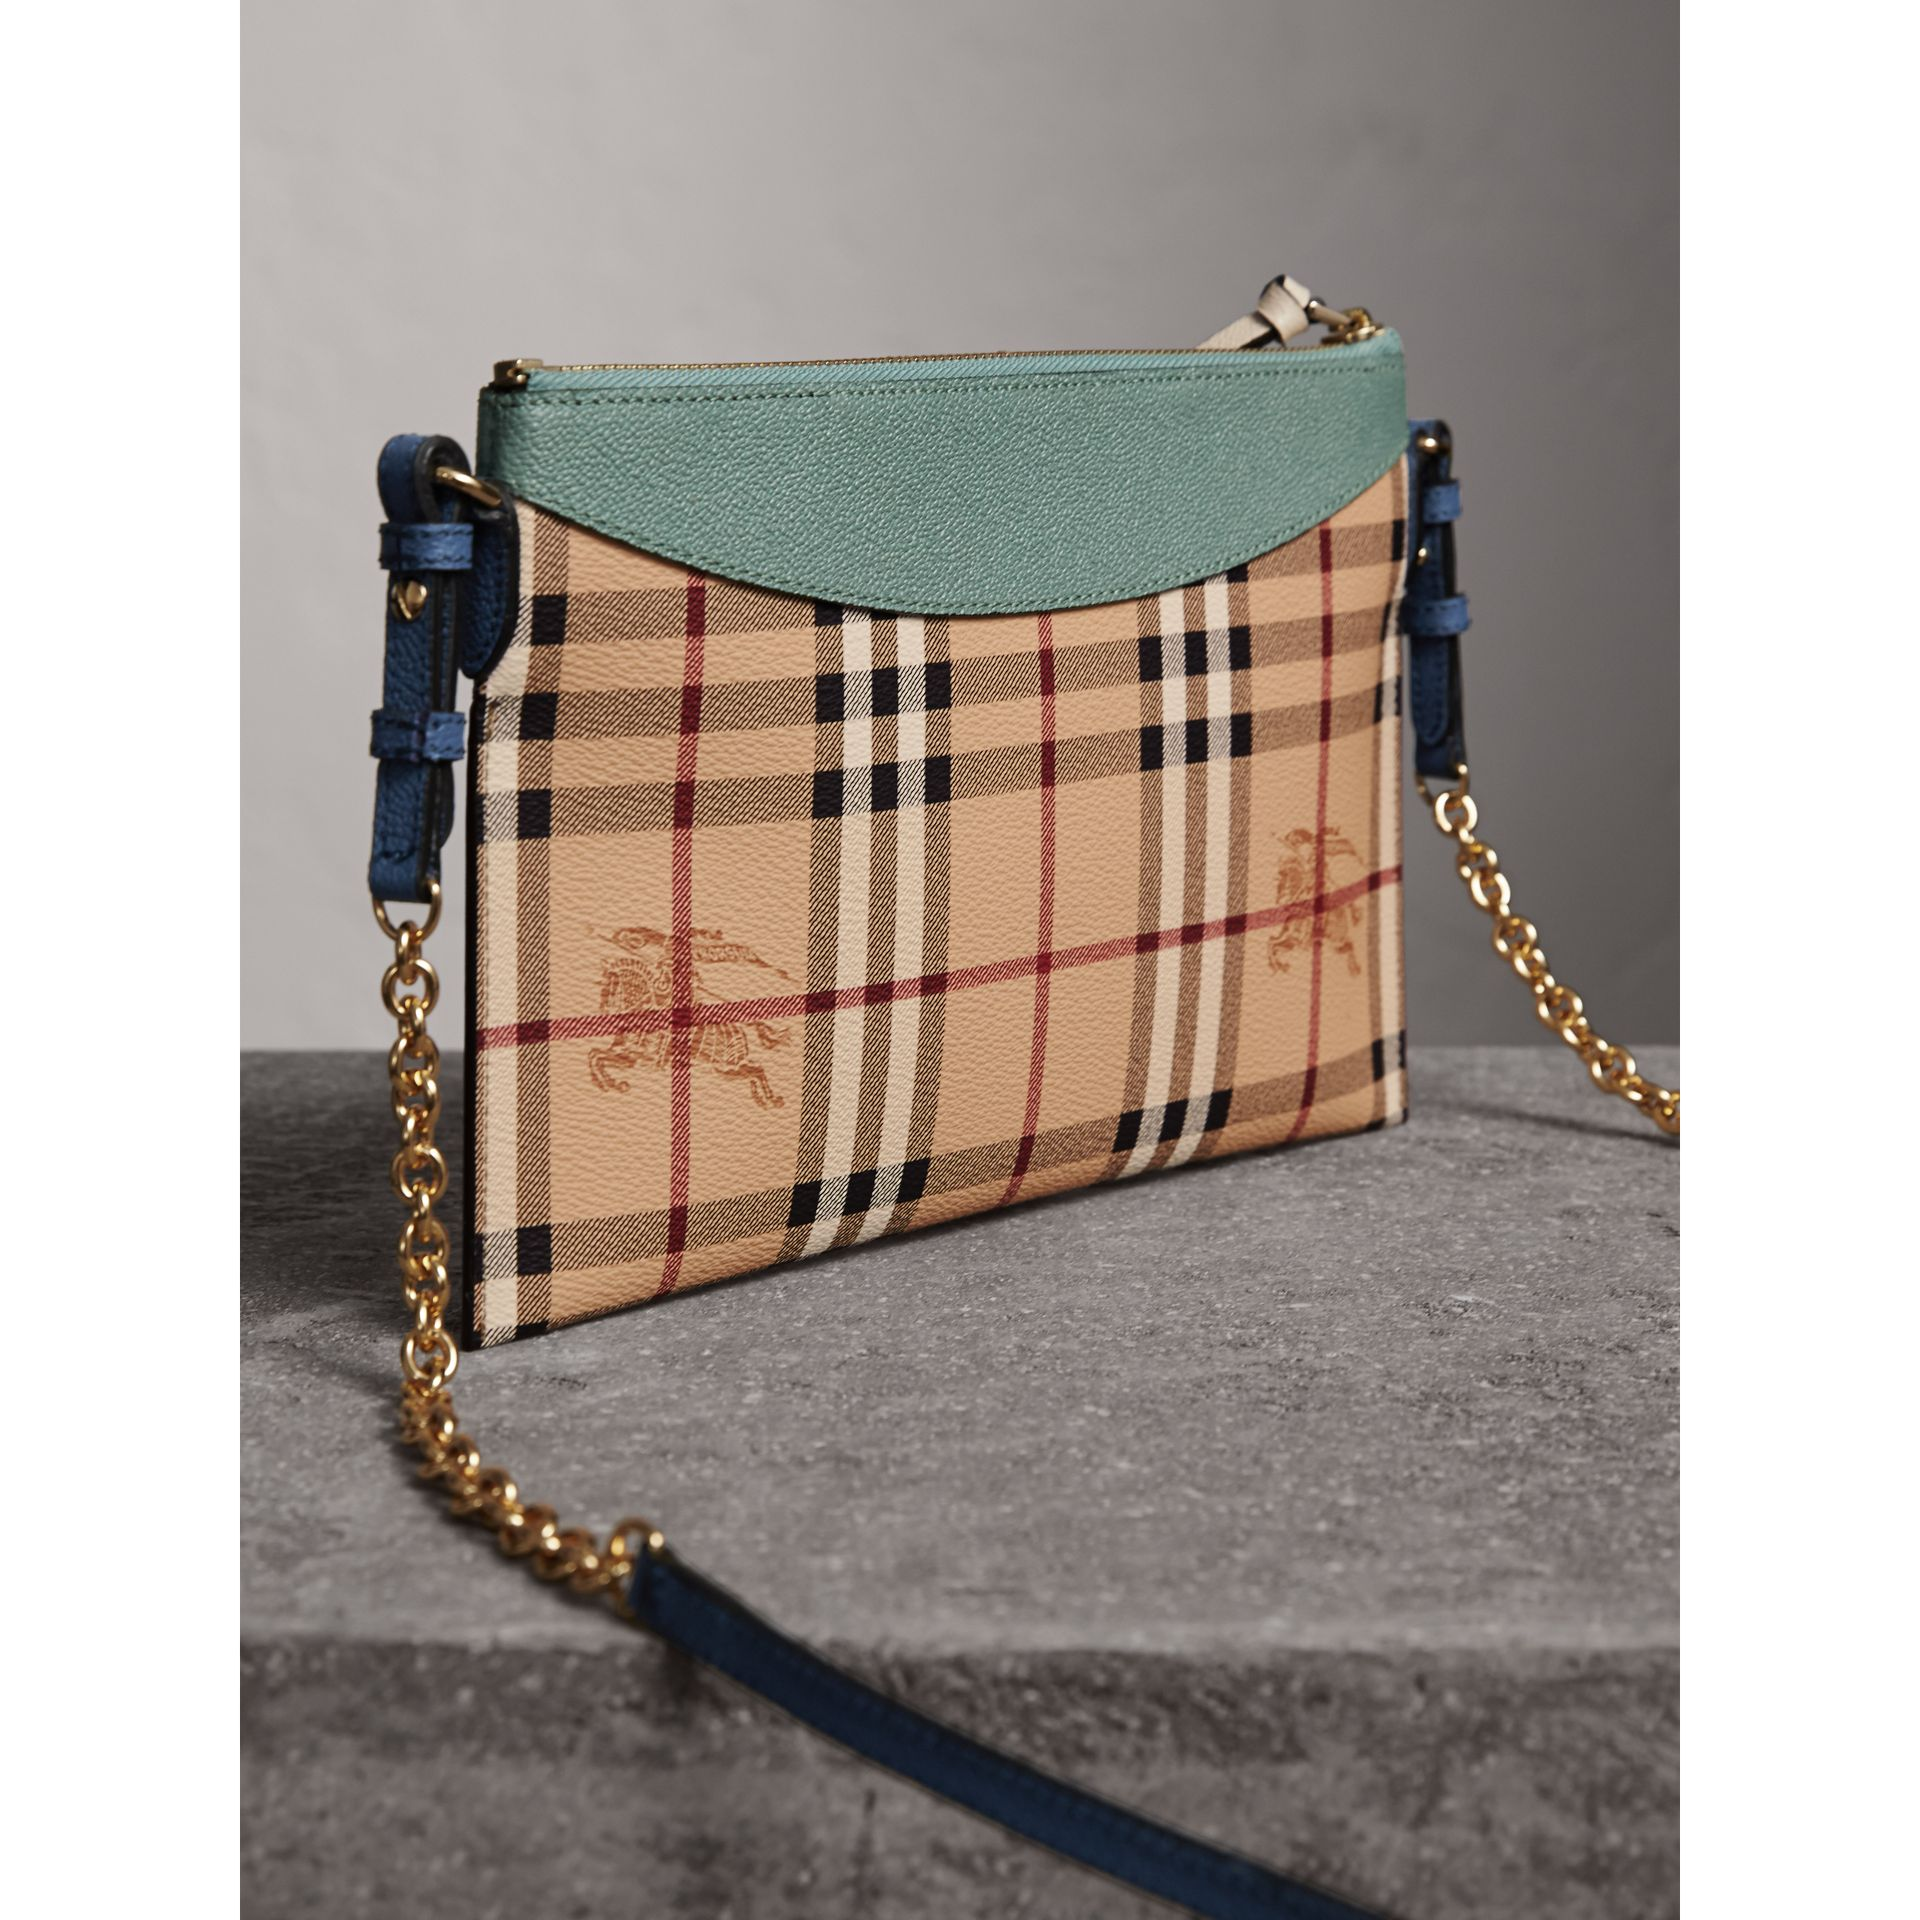 Haymarket Check and Two-tone Leather Clutch Bag in Eucalyptus Green/multicolour - Women | Burberry United States - gallery image 5